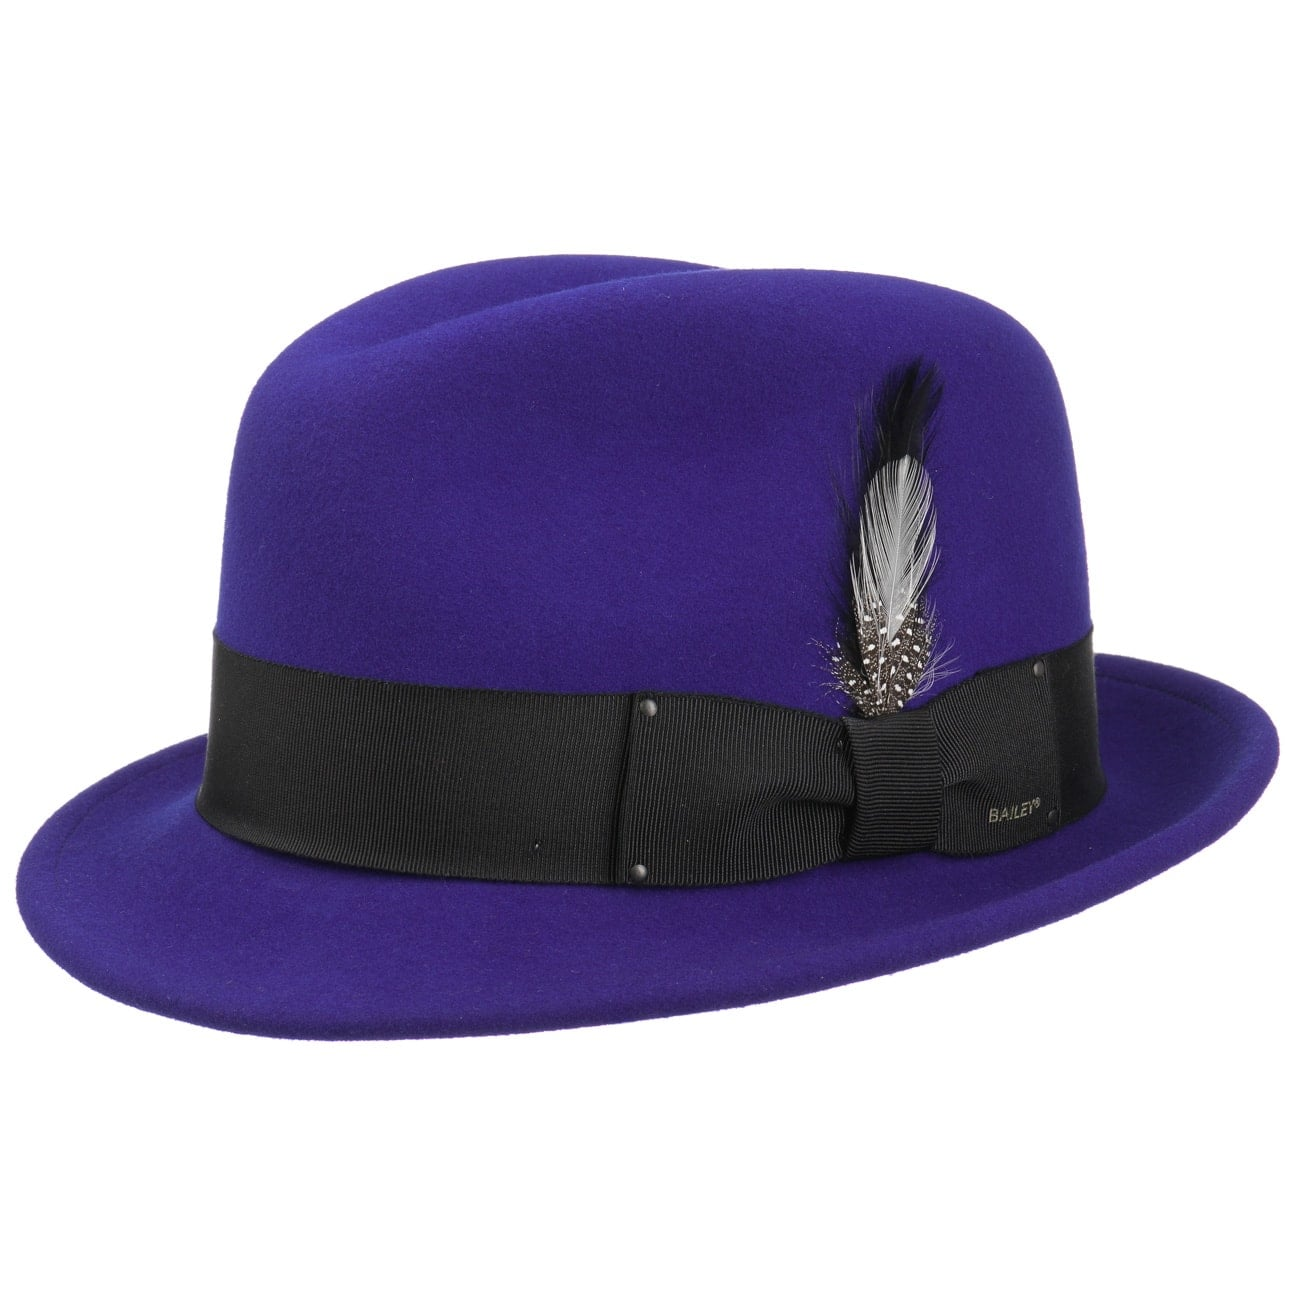 LiteFelt Trilby by Bailey of Hollywood  sombrero de hombre